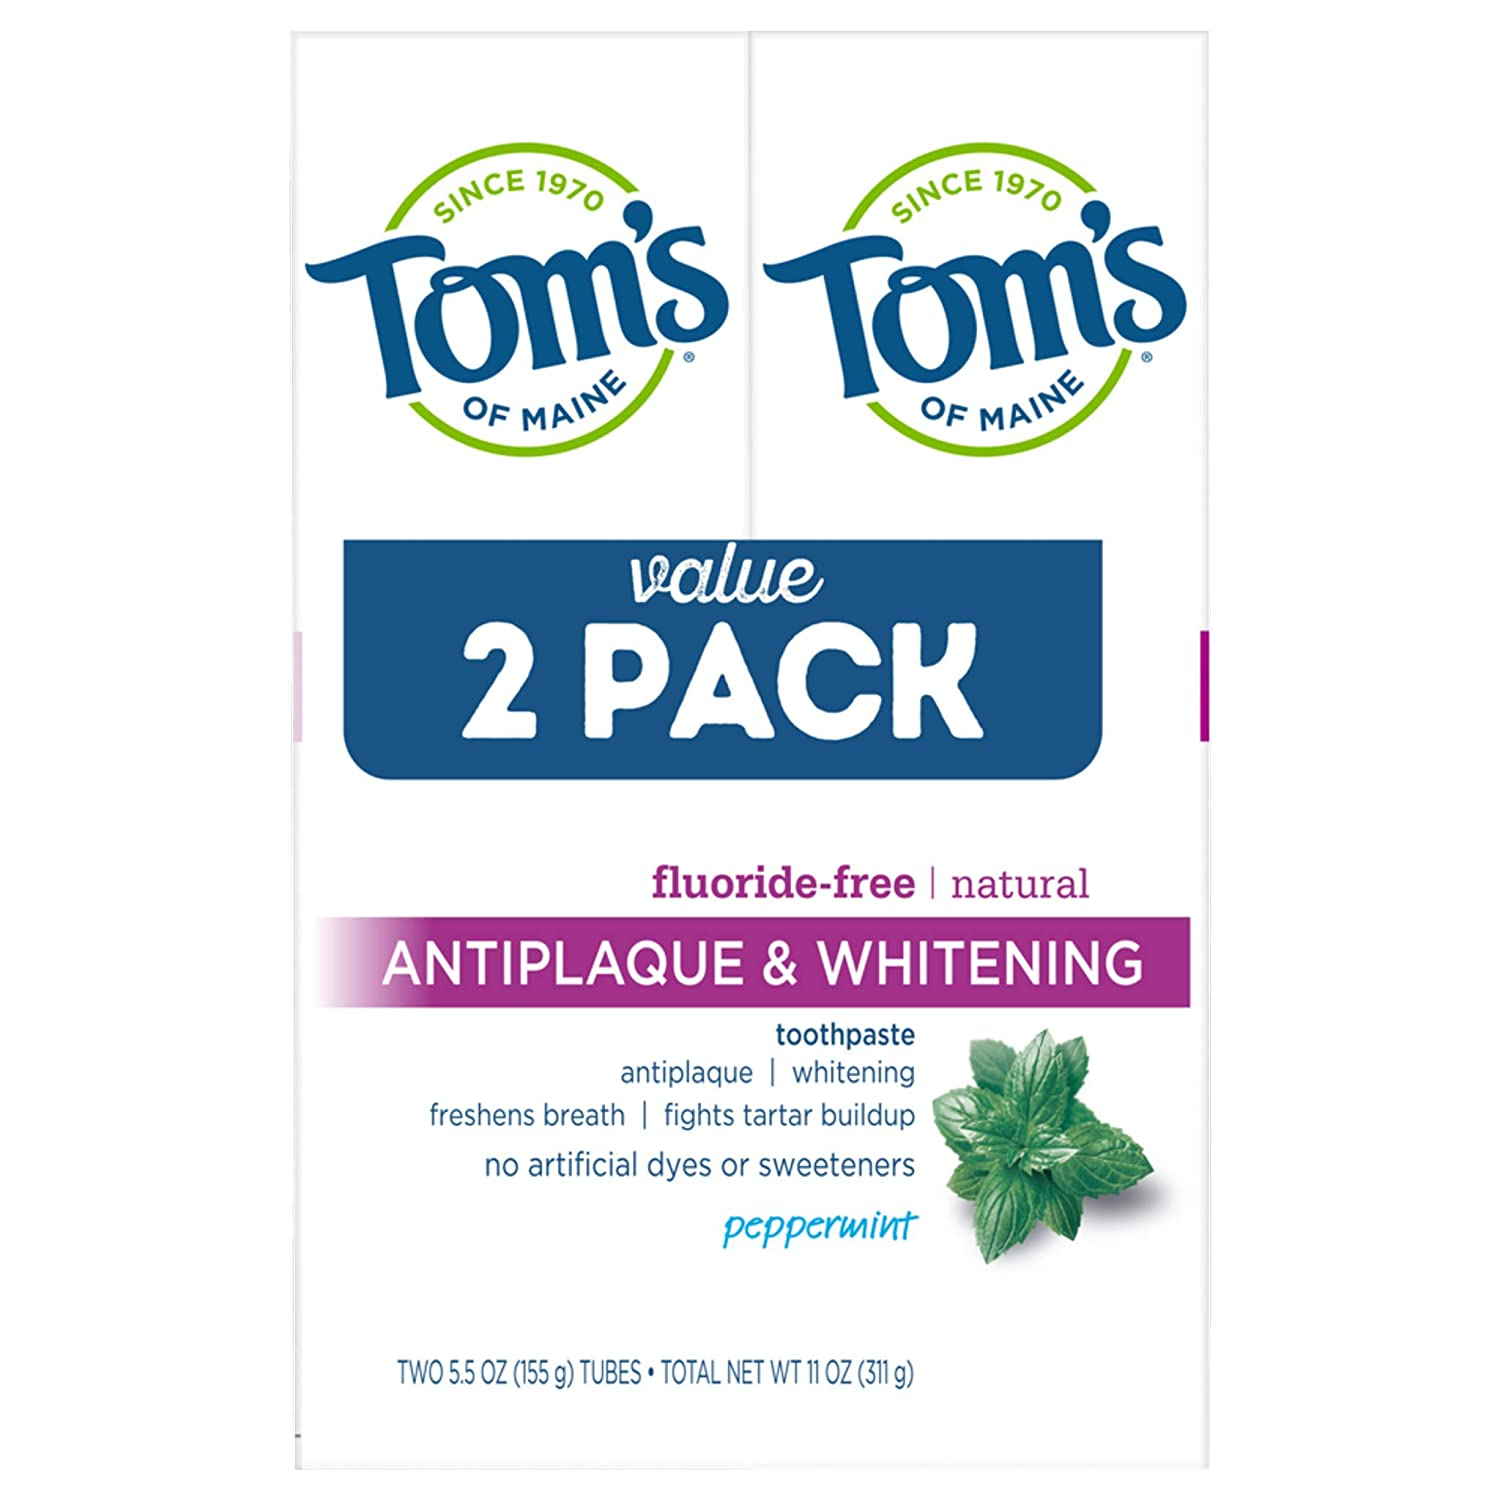 Tom's of Maine Fluoride-Free Natural Toot Max 74% OFF Antiplaque Beauty products Whitening